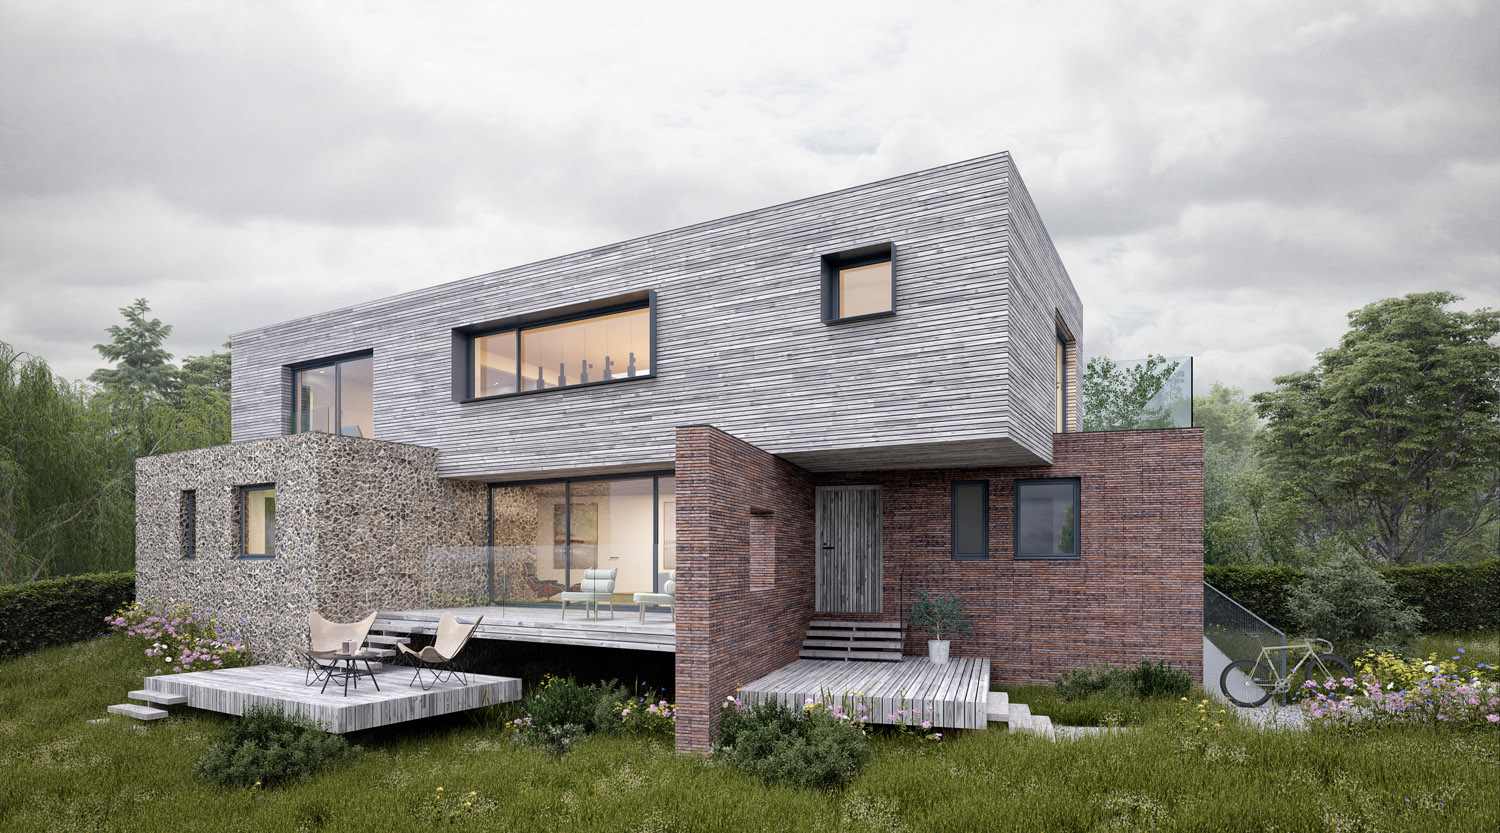 Five Elms - Architectural Visualisation - 001